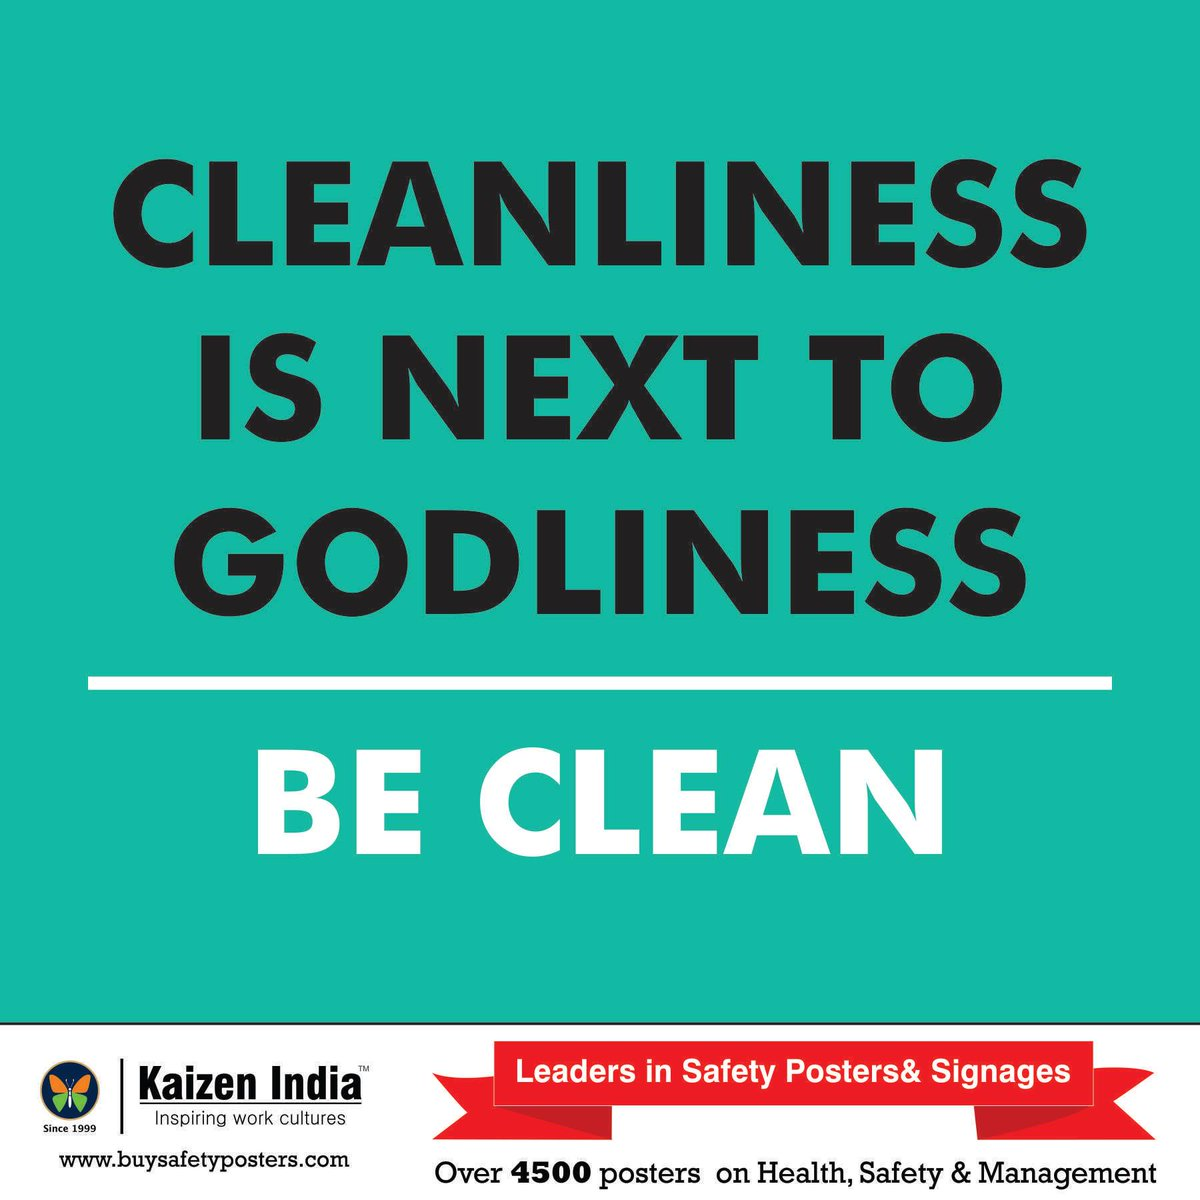 cleanliness is next to godliness essay